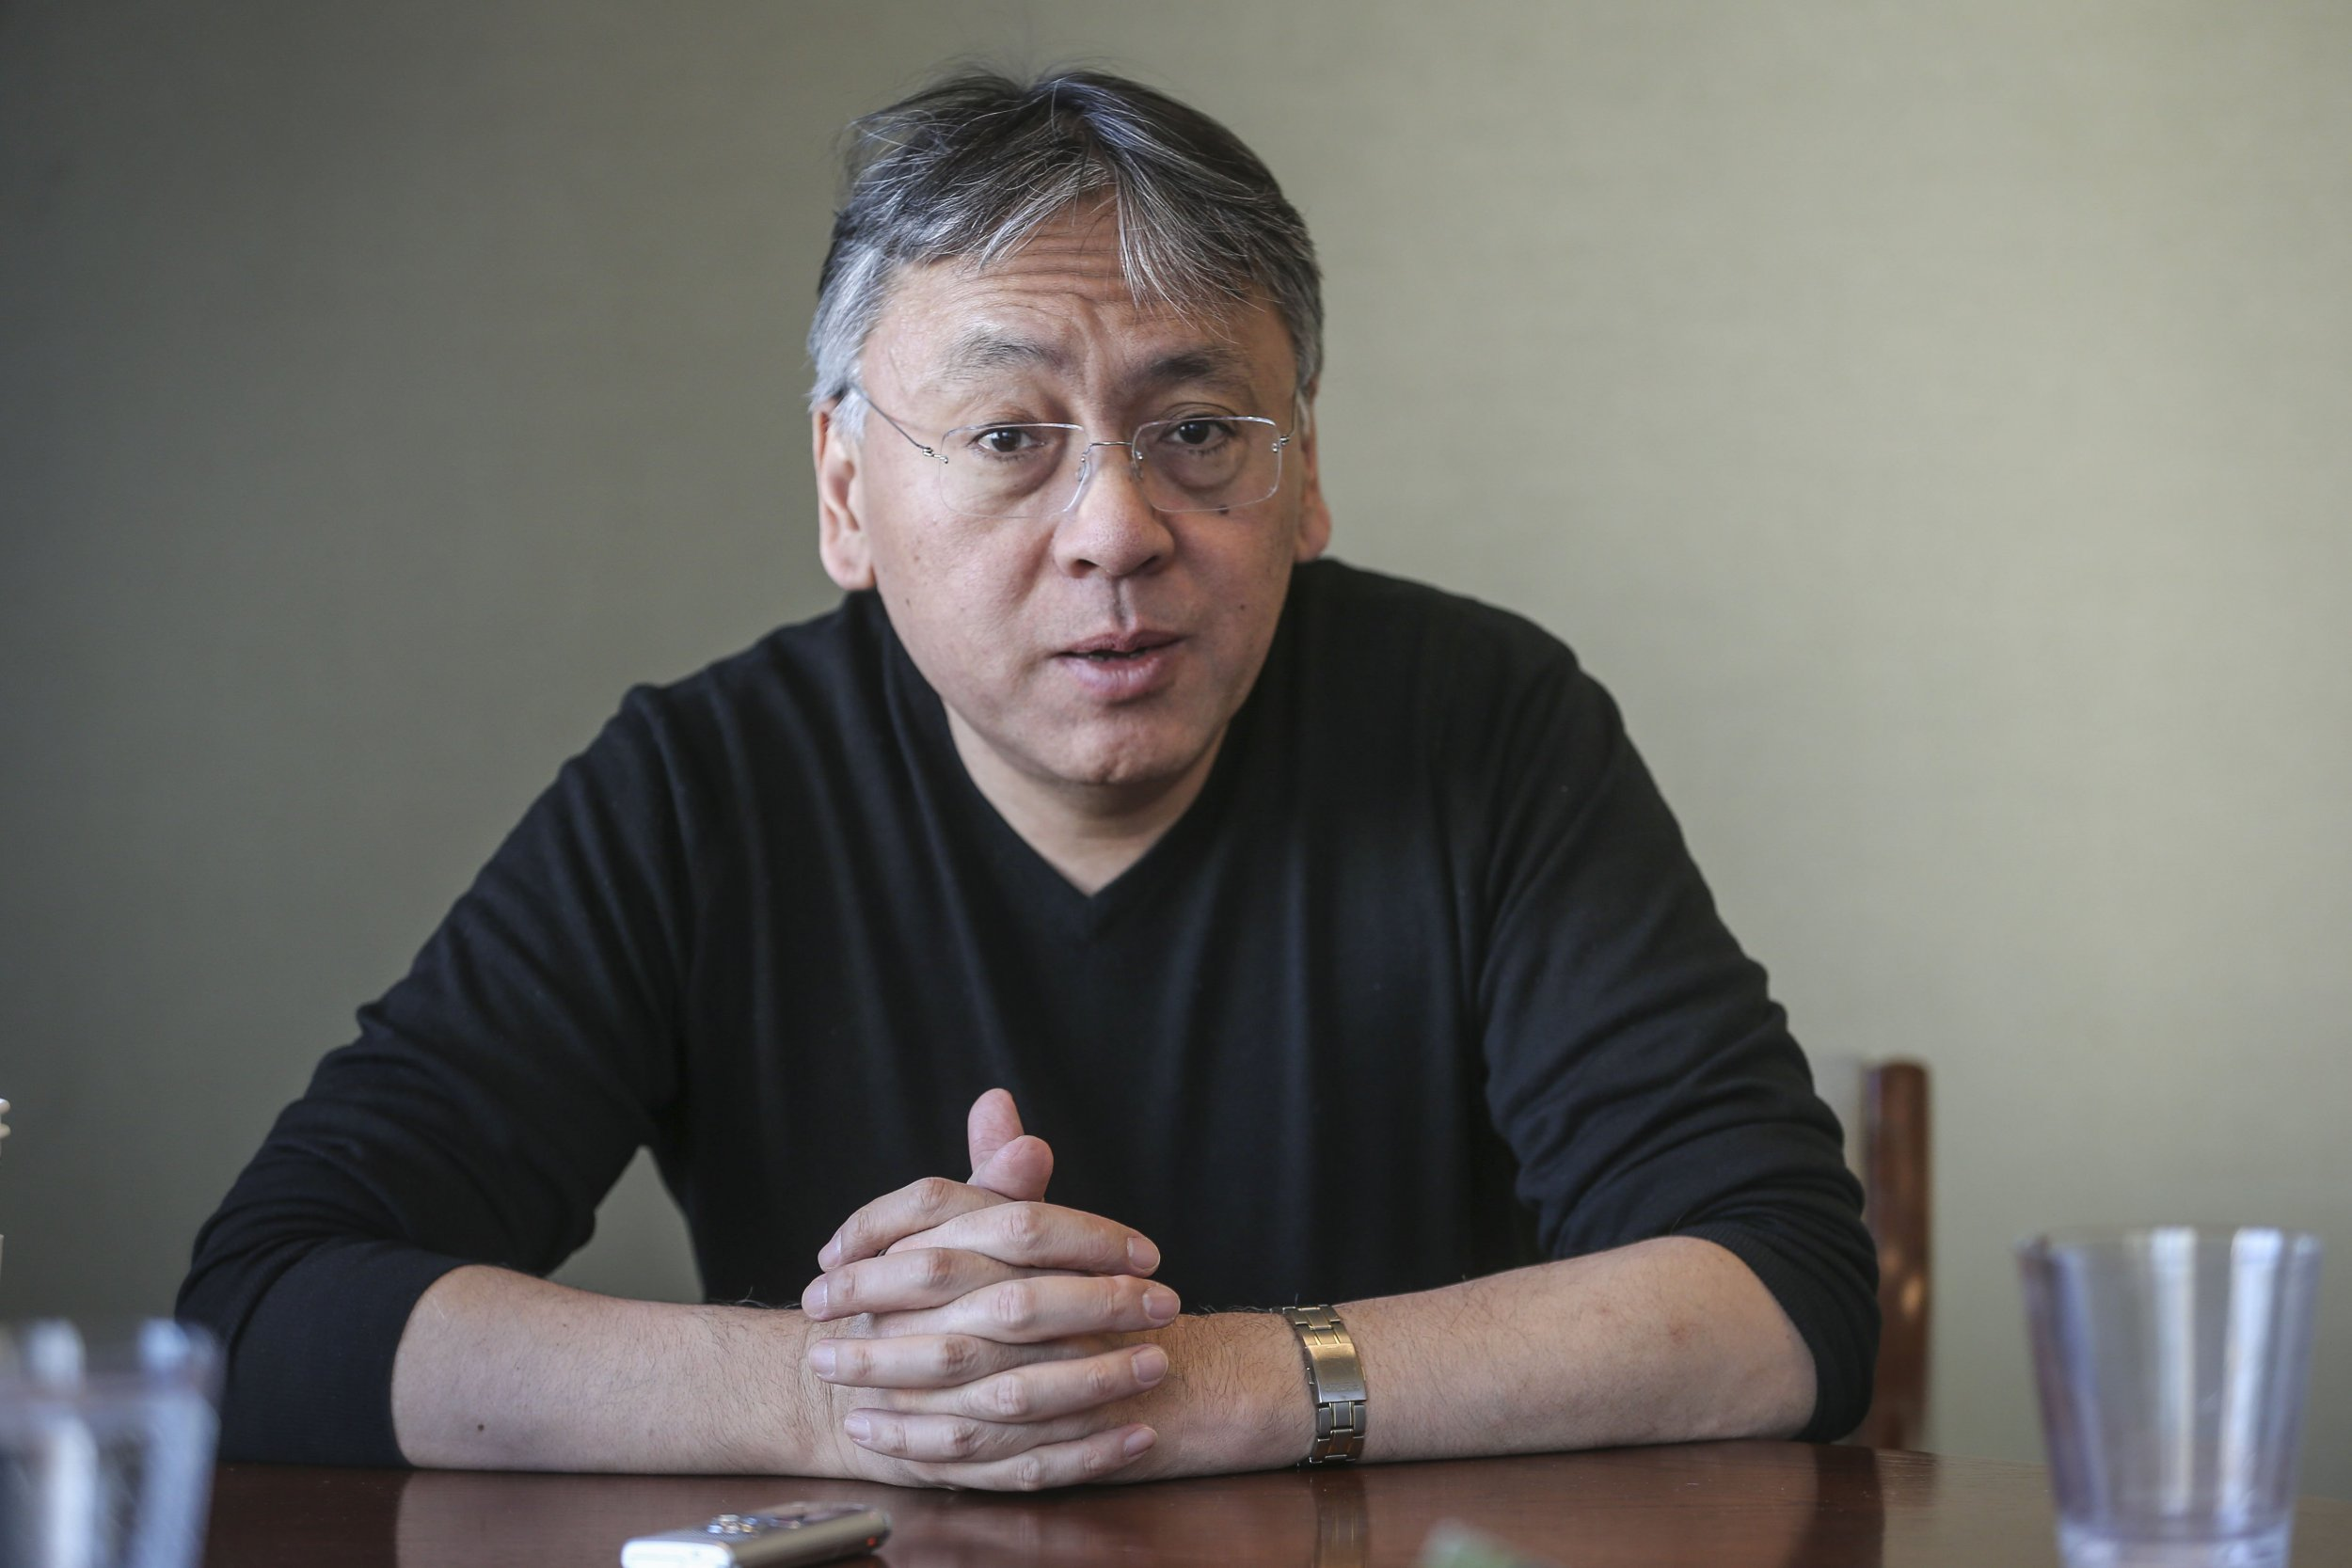 Kazuo Ishiguro, Nobel Prize for literature winner 2017